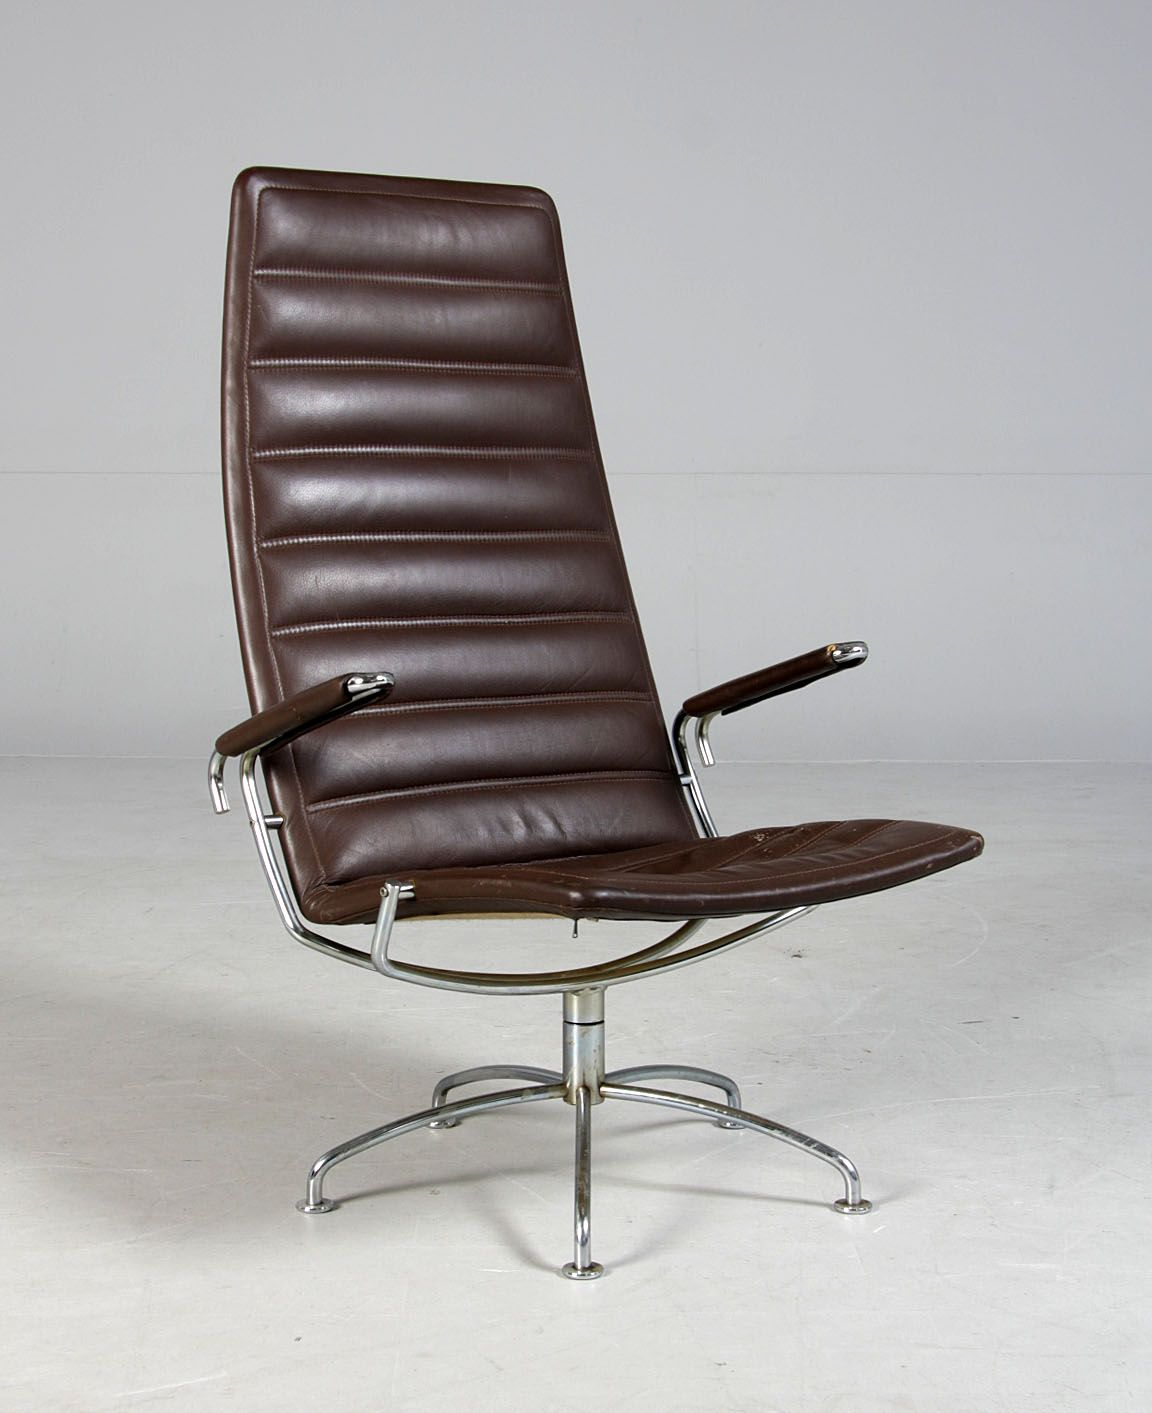 Metal And Leather Chair Jens Ammundsen Chromed Metal And Leather 39sas 39 Chair For